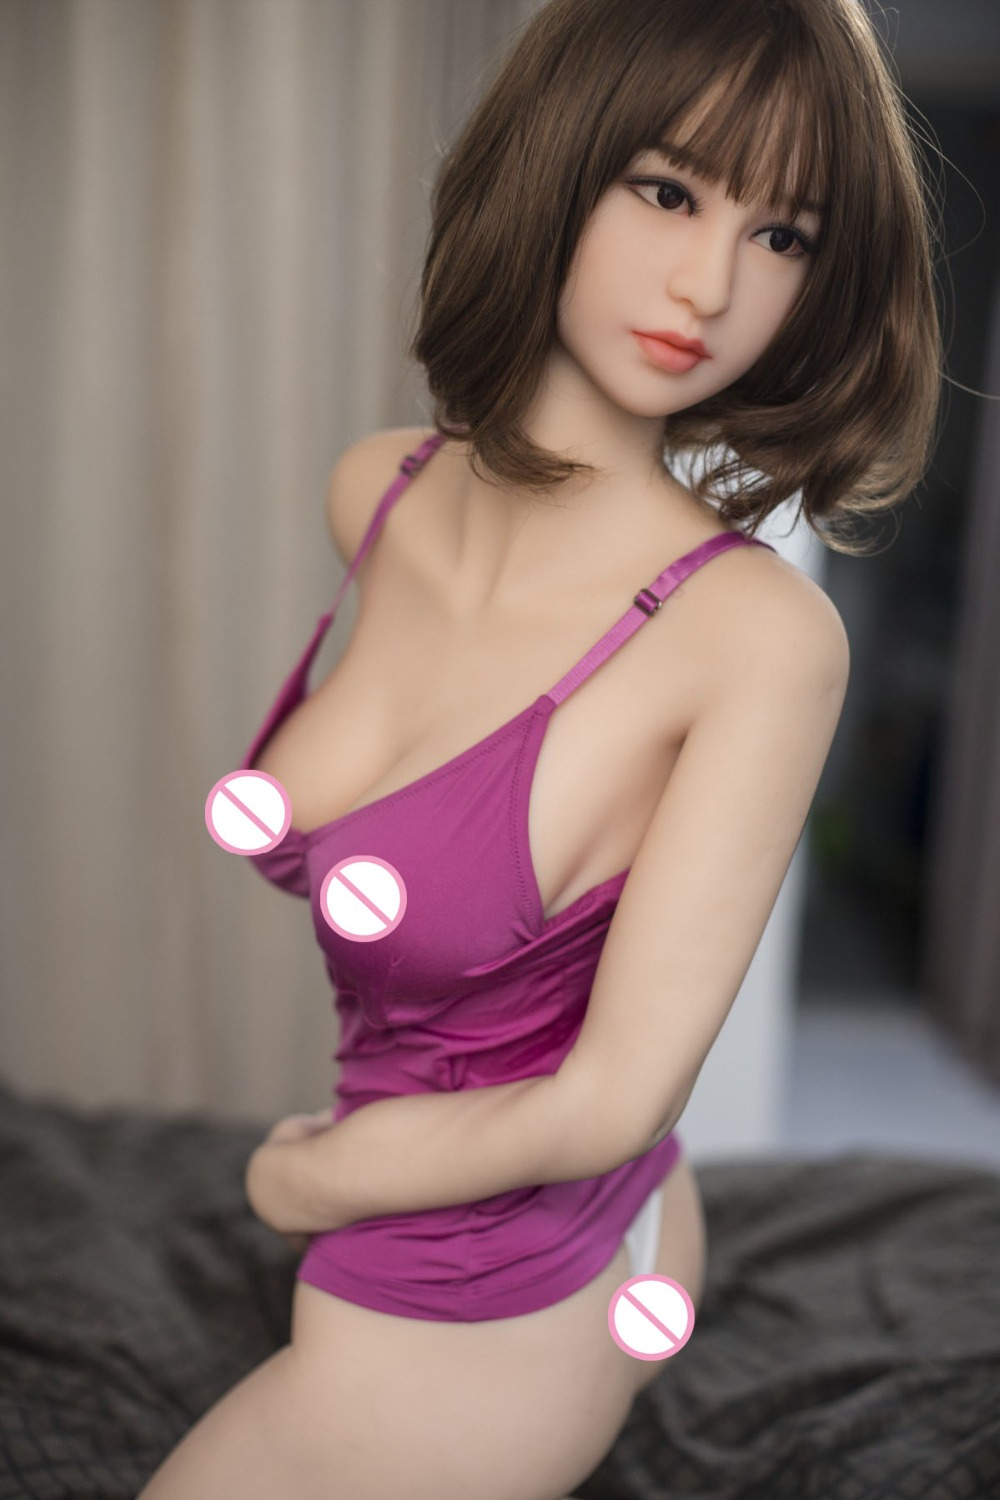 NEW 165cm Silicone Sex Doll For Men Breast Oral Ass Vaginal Sex Real Size Adult Product Top Quality Simulation Love Toy Dolls new top quality silicone sex doll head for real human dolls real doll adult oral sex toy for men